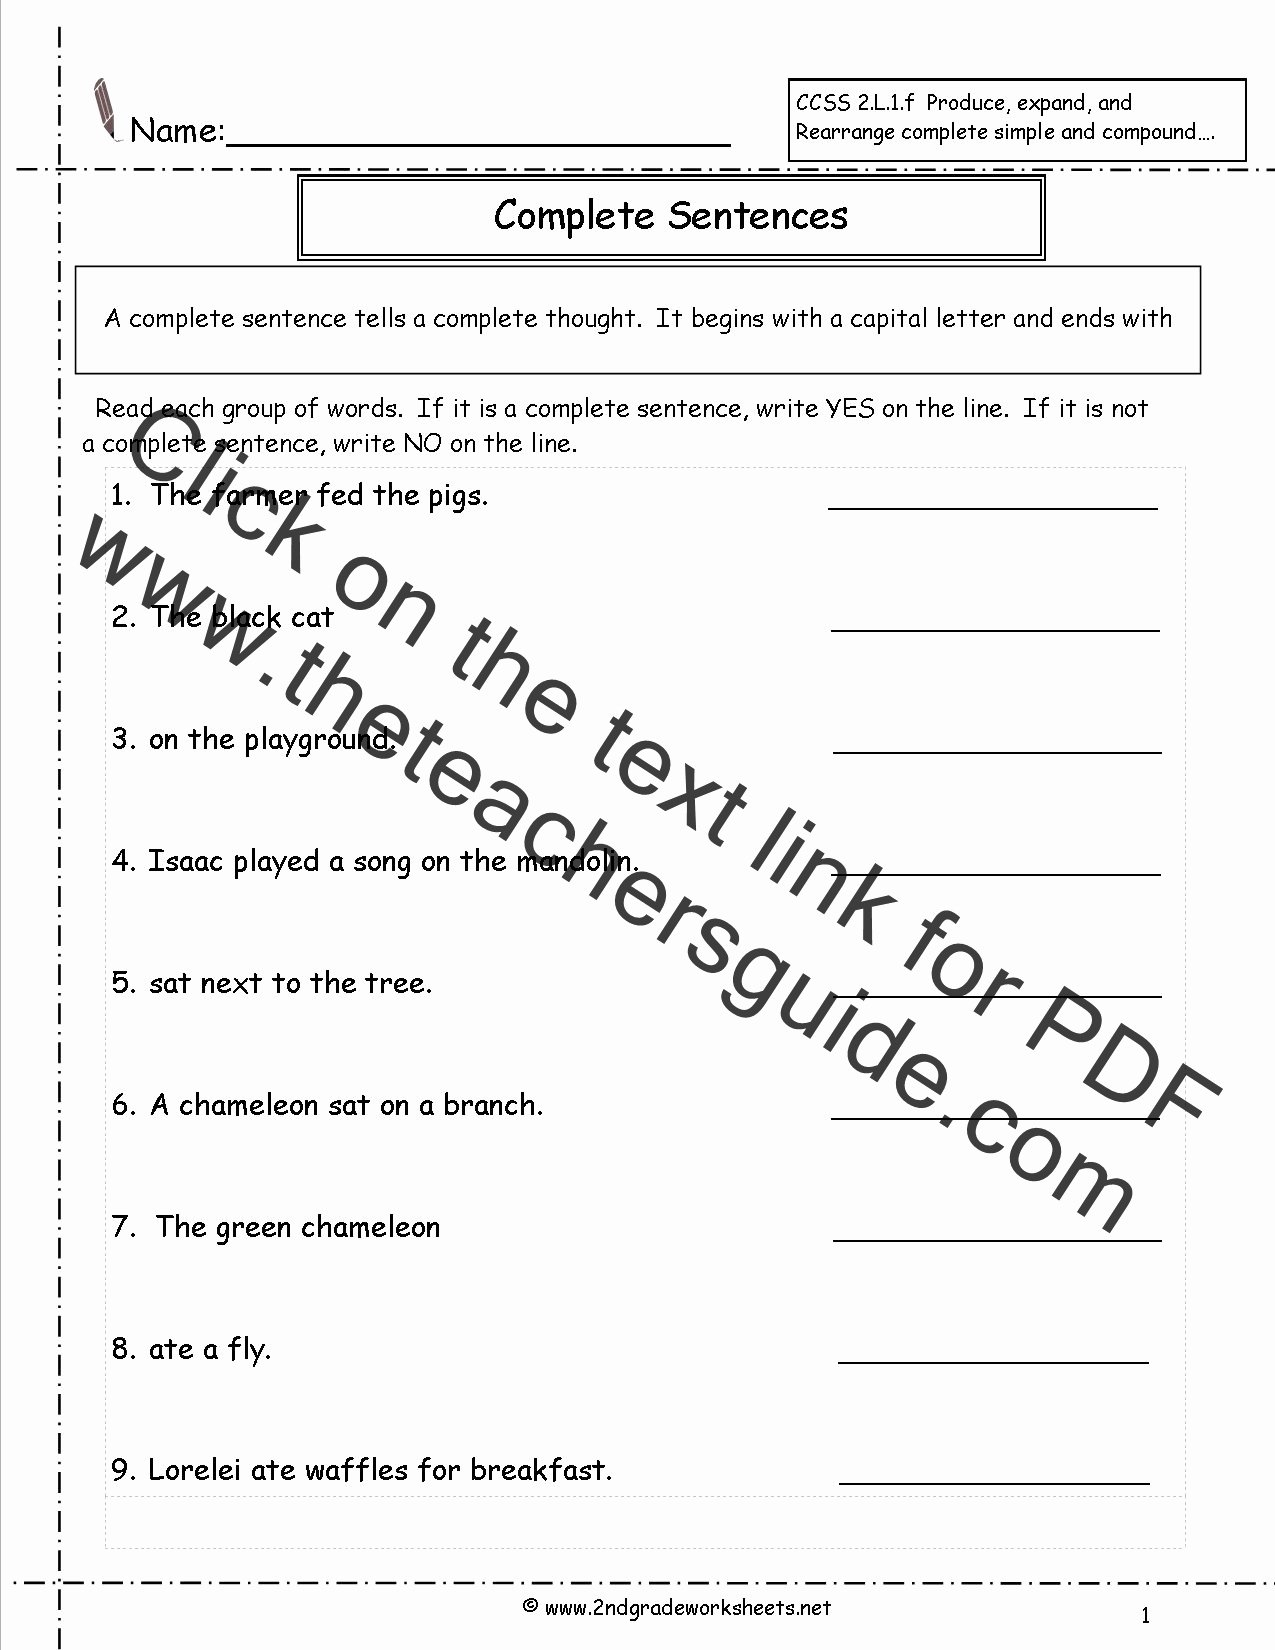 Complete and Incomplete Sentence Worksheets top Second Grade Sentences Worksheets Ccss 2 L 1 F Worksheets